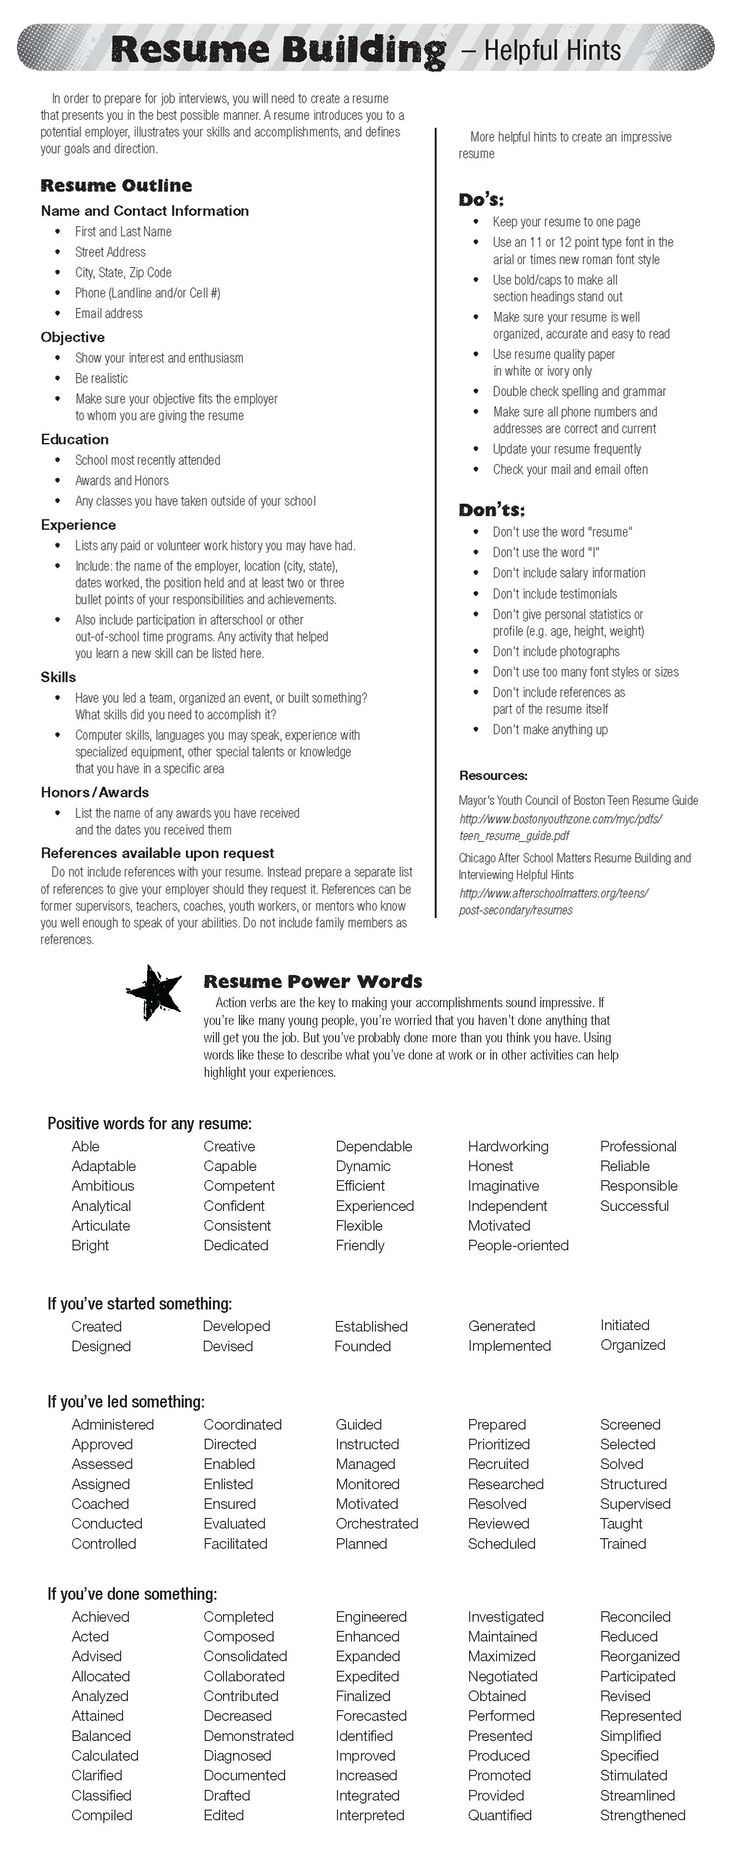 Opposenewapstandardsus  Unique  Ideas About Resume On Pinterest  Cv Format Resume Cv And  With Goodlooking  Ideas About Resume On Pinterest  Cv Format Resume Cv And Resume Templates With Astounding Make Online Resume Also Coffee Shop Resume In Addition Example Of A Resume Summary And Resume Languages As Well As Send Resume Additionally Fedex Resume From Pinterestcom With Opposenewapstandardsus  Goodlooking  Ideas About Resume On Pinterest  Cv Format Resume Cv And  With Astounding  Ideas About Resume On Pinterest  Cv Format Resume Cv And Resume Templates And Unique Make Online Resume Also Coffee Shop Resume In Addition Example Of A Resume Summary From Pinterestcom